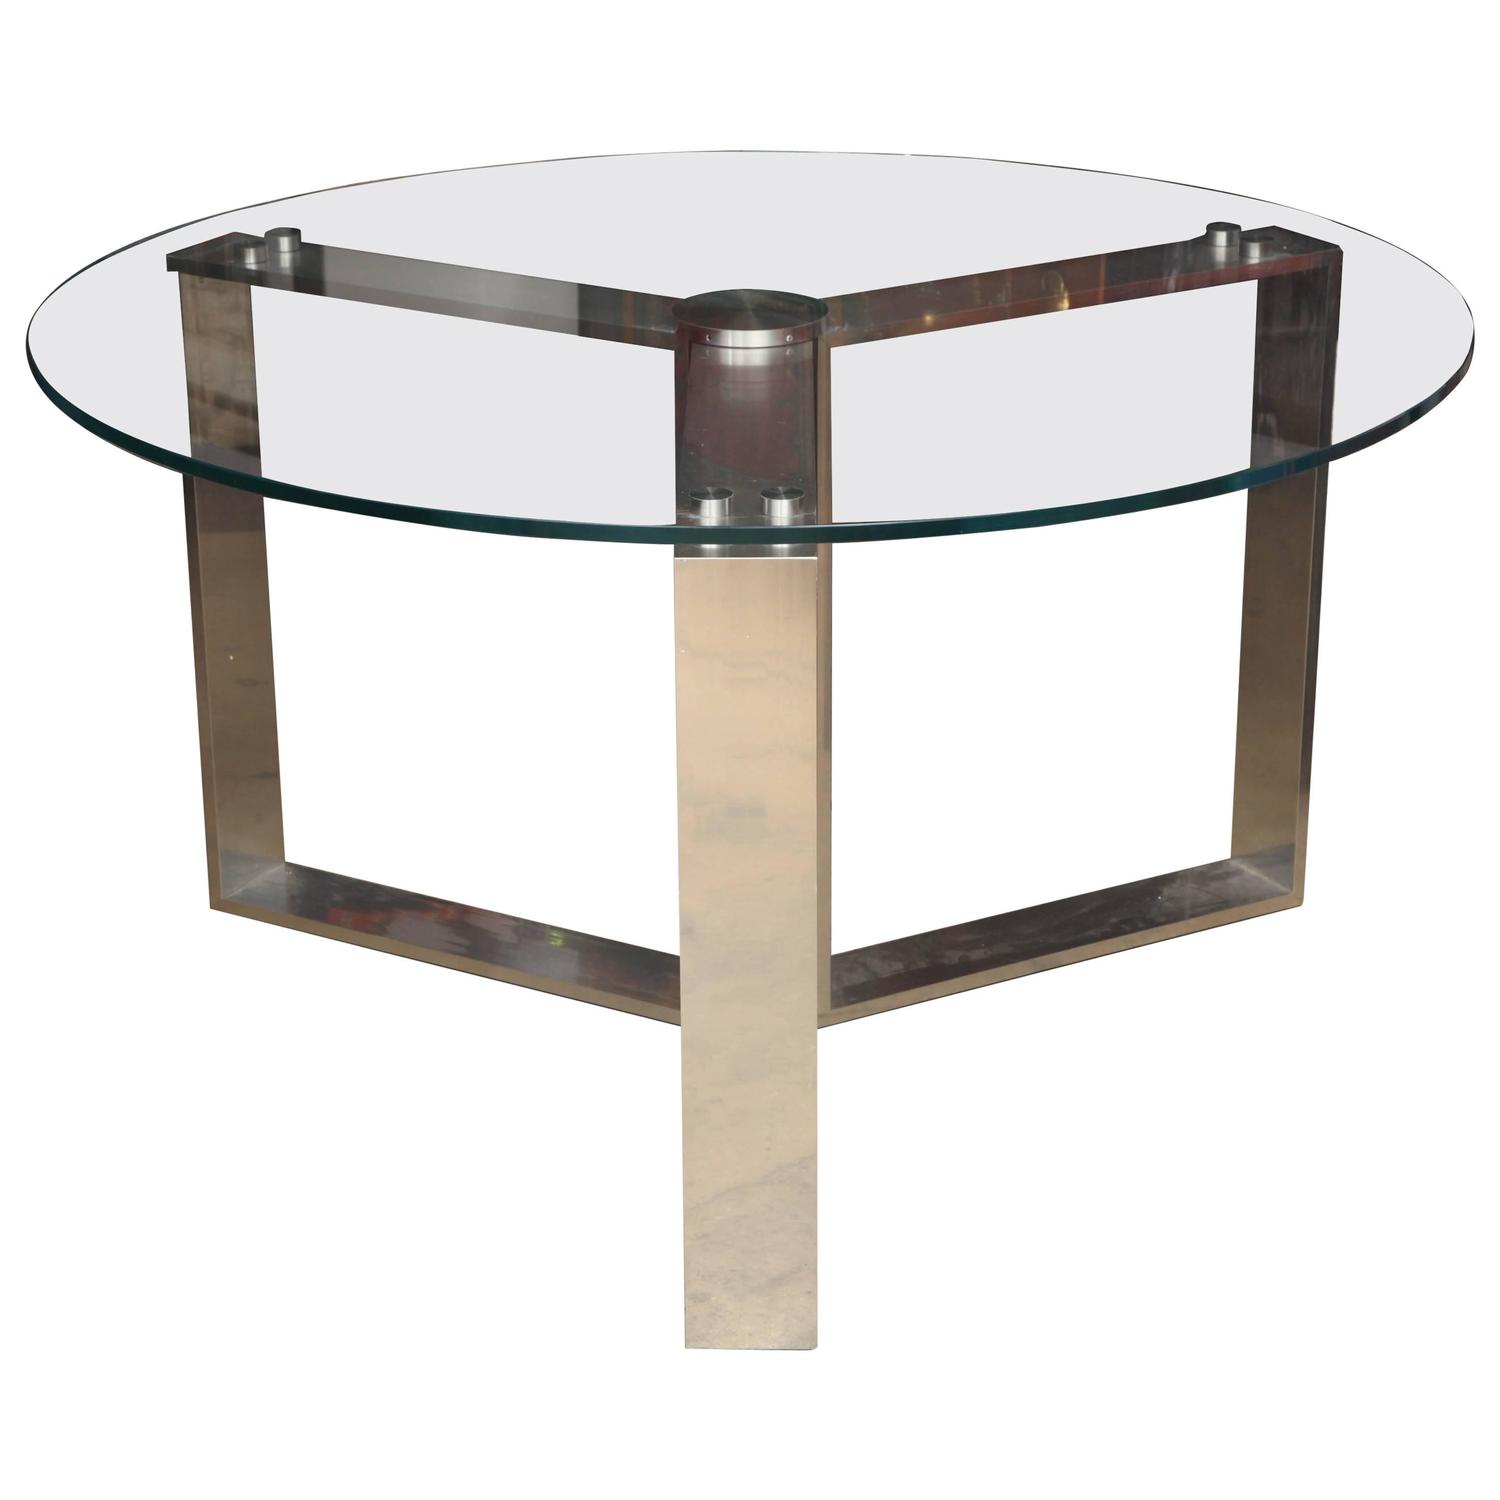 Glass Kitchen Tables For Sale: Round Glass Dining Table For Sale At 1stdibs